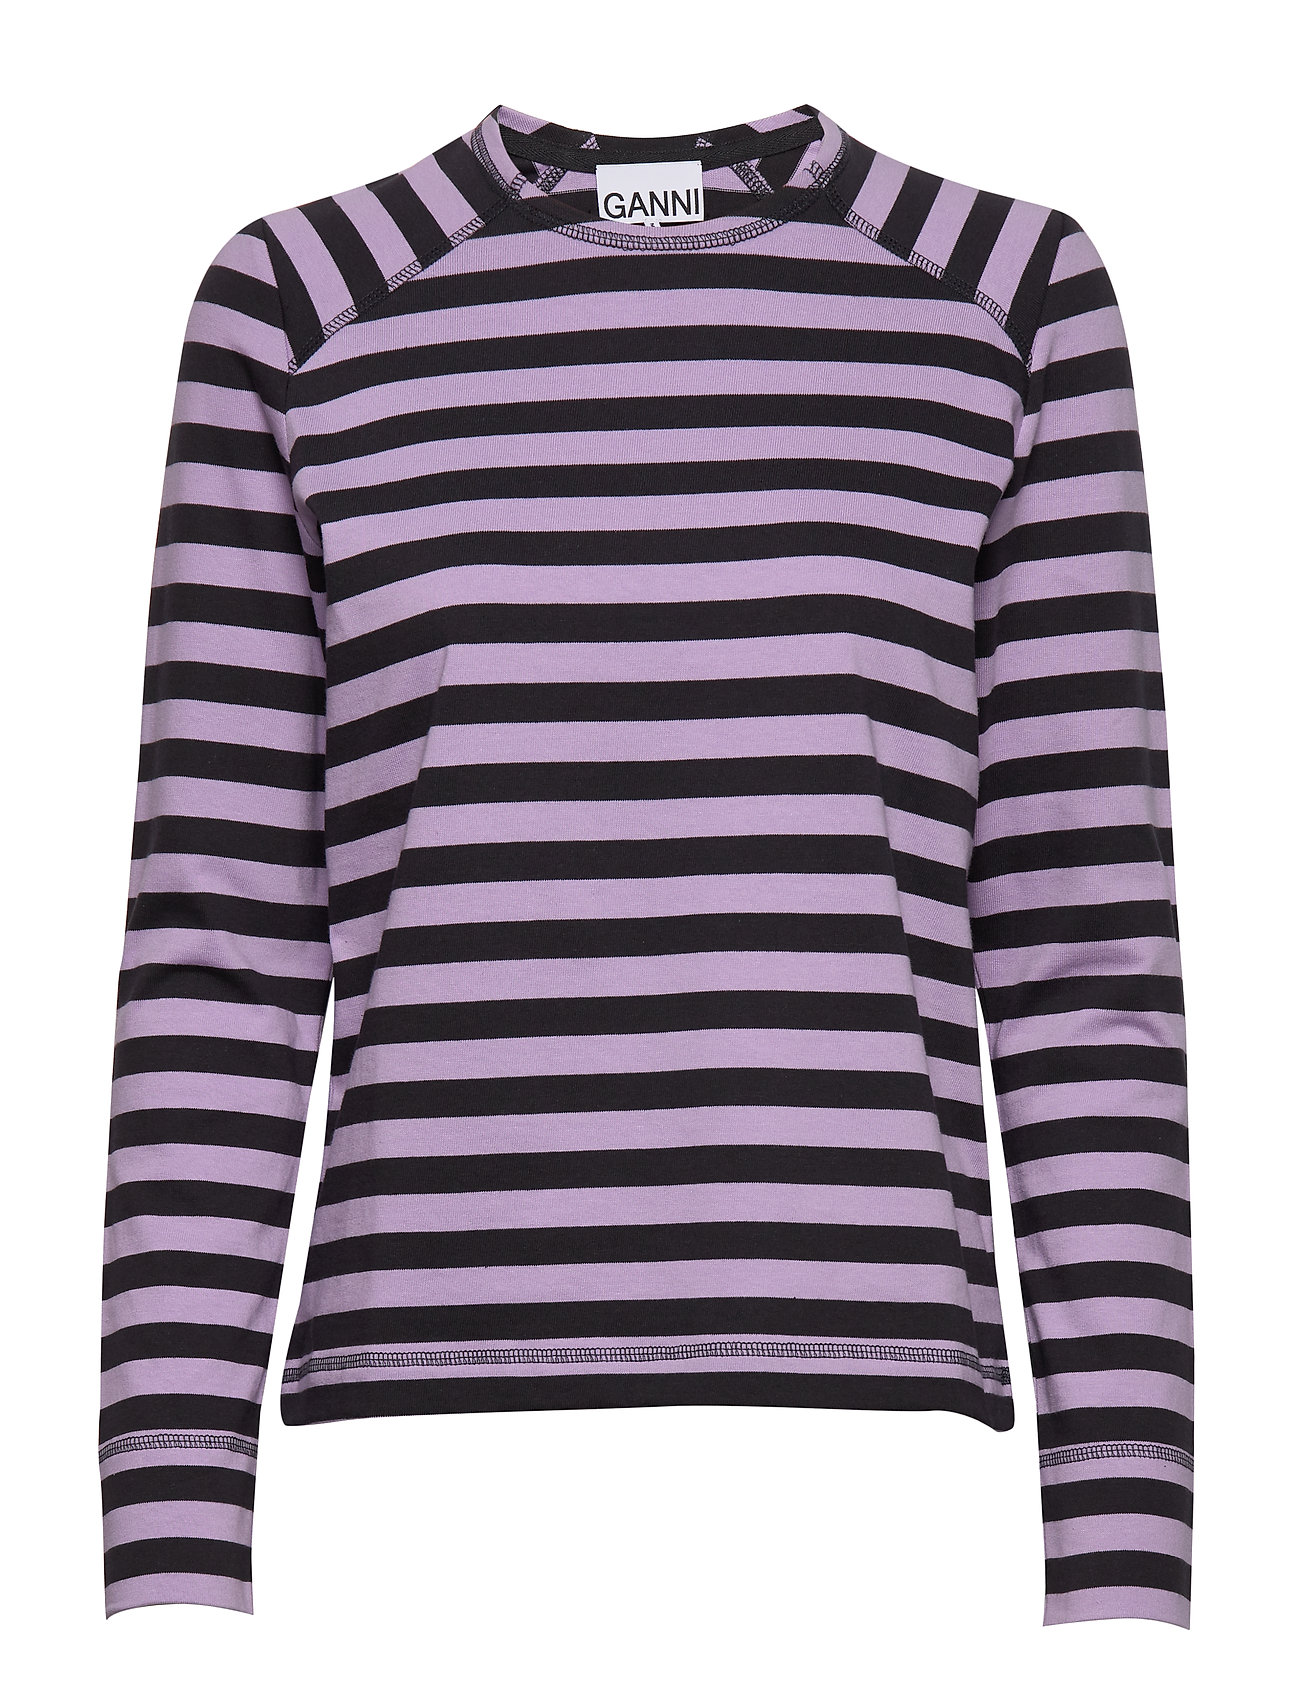 Ganni Striped Cotton Jersey - VIOLET TULIP